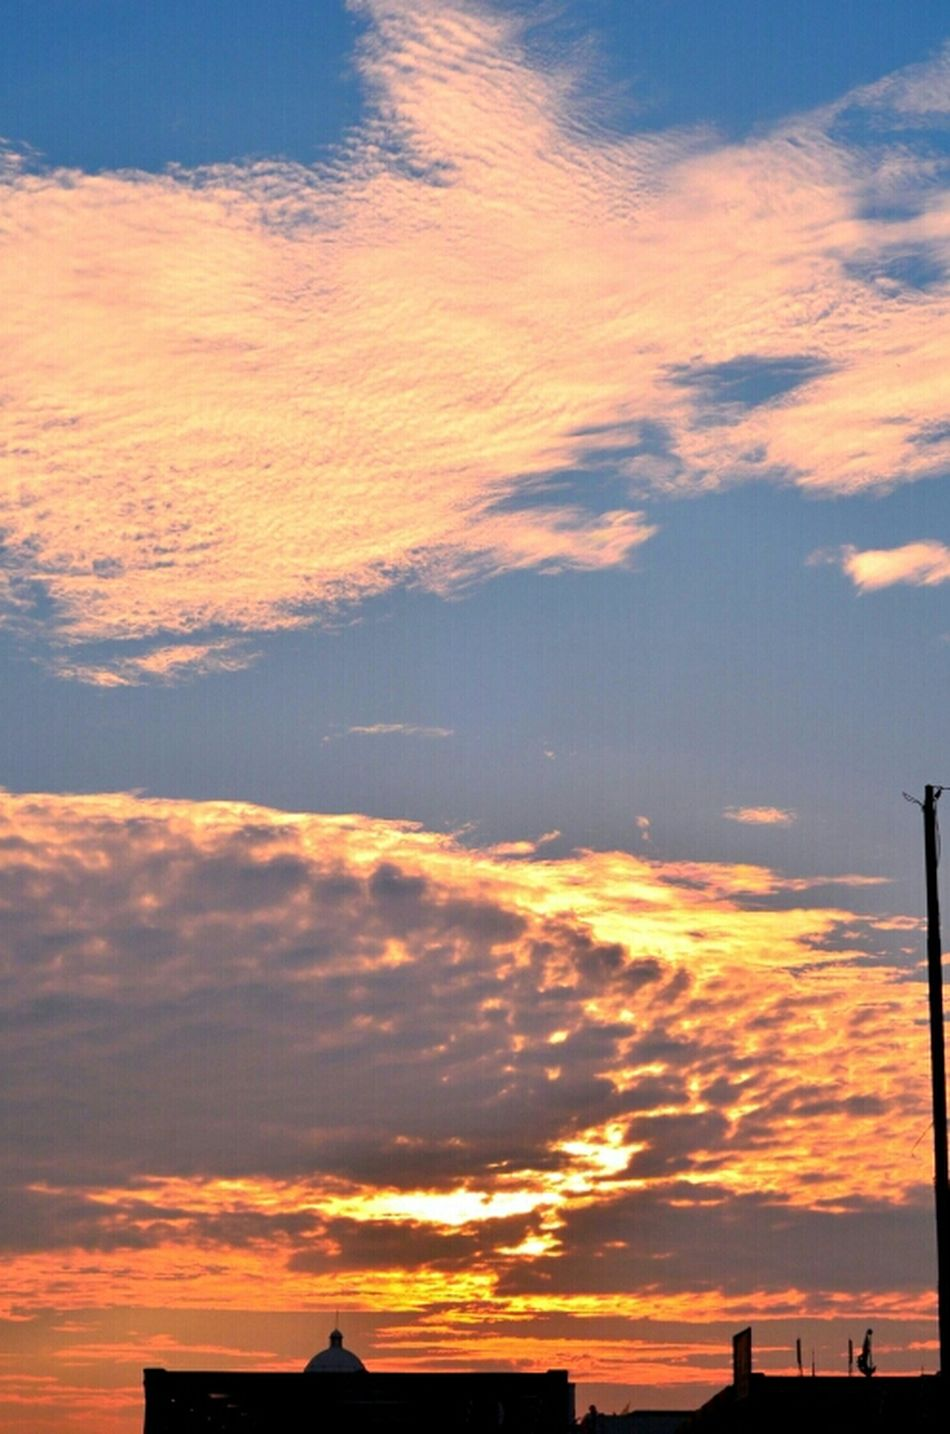 Morning breaks Sunrise INDONESIA Clouds And Sky Skyporn Sky_collection Eye4photography